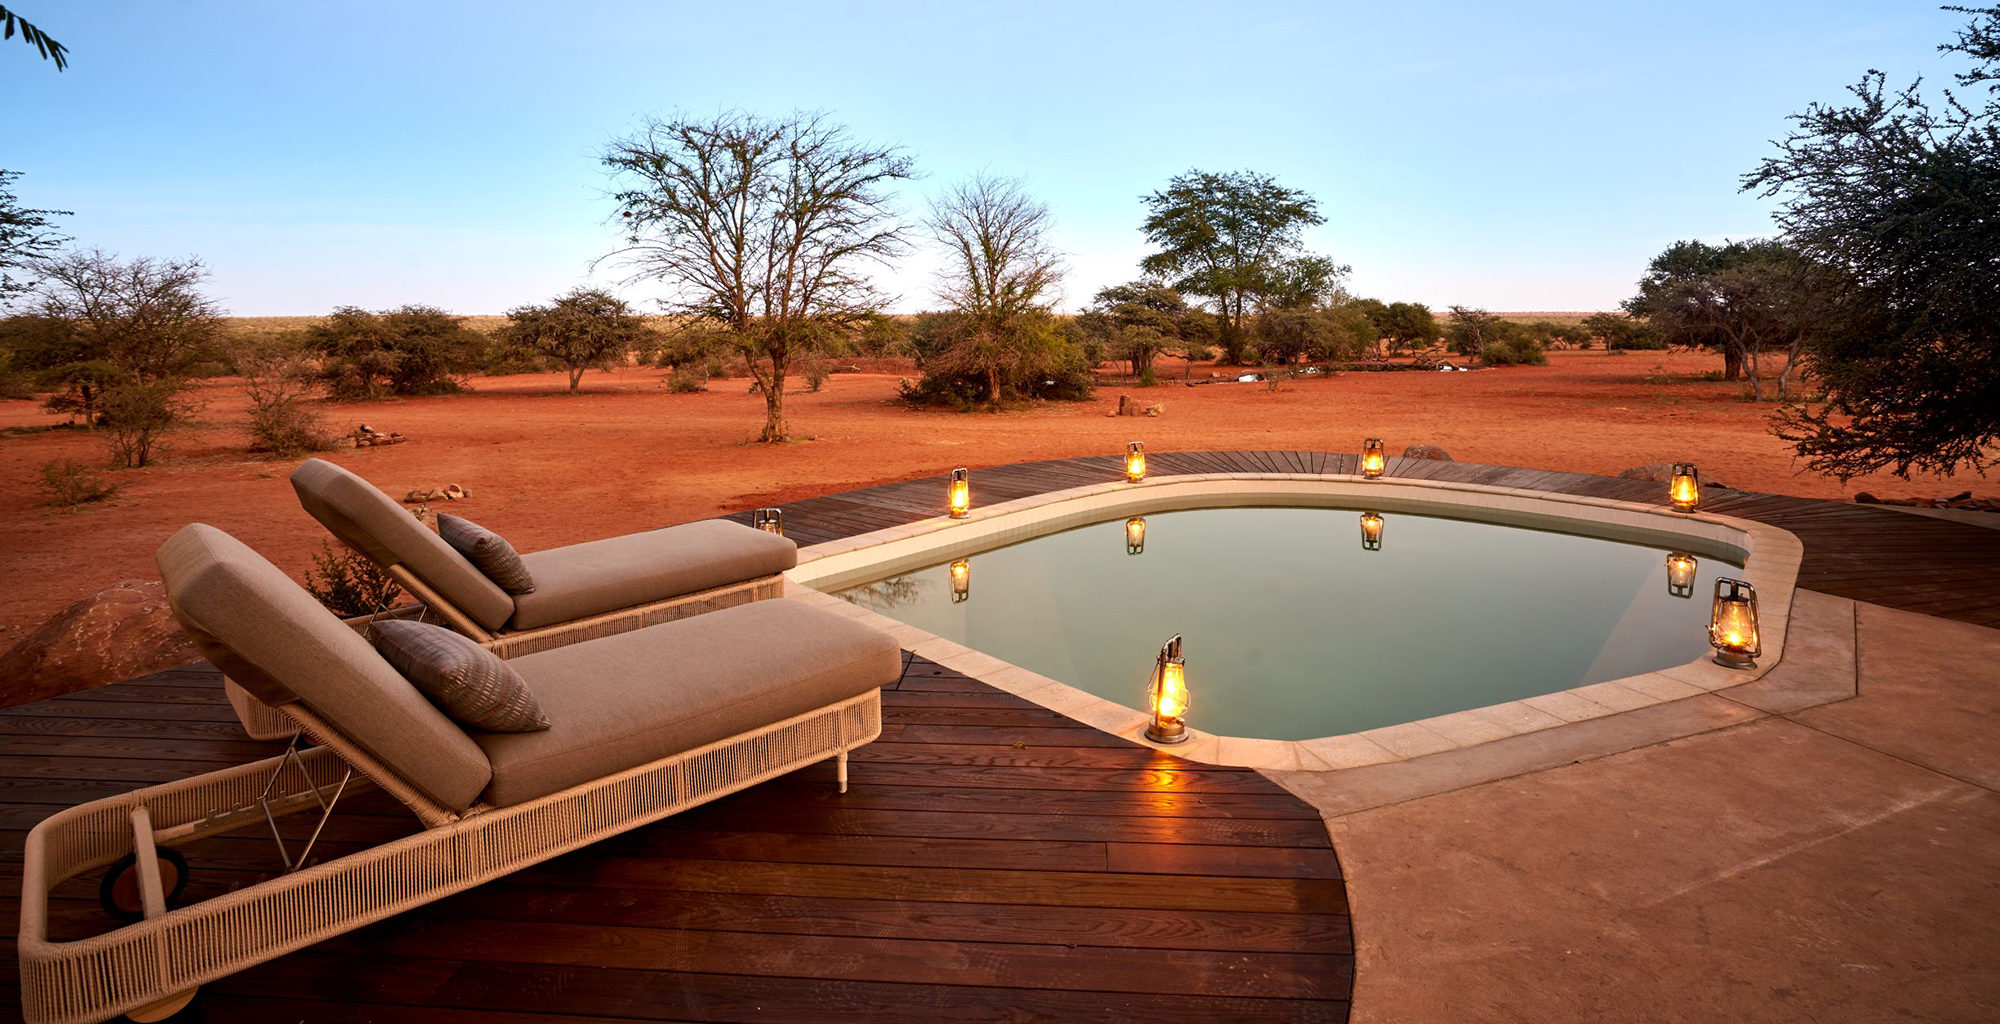 South-Africa-Motse-Lodge-Deck